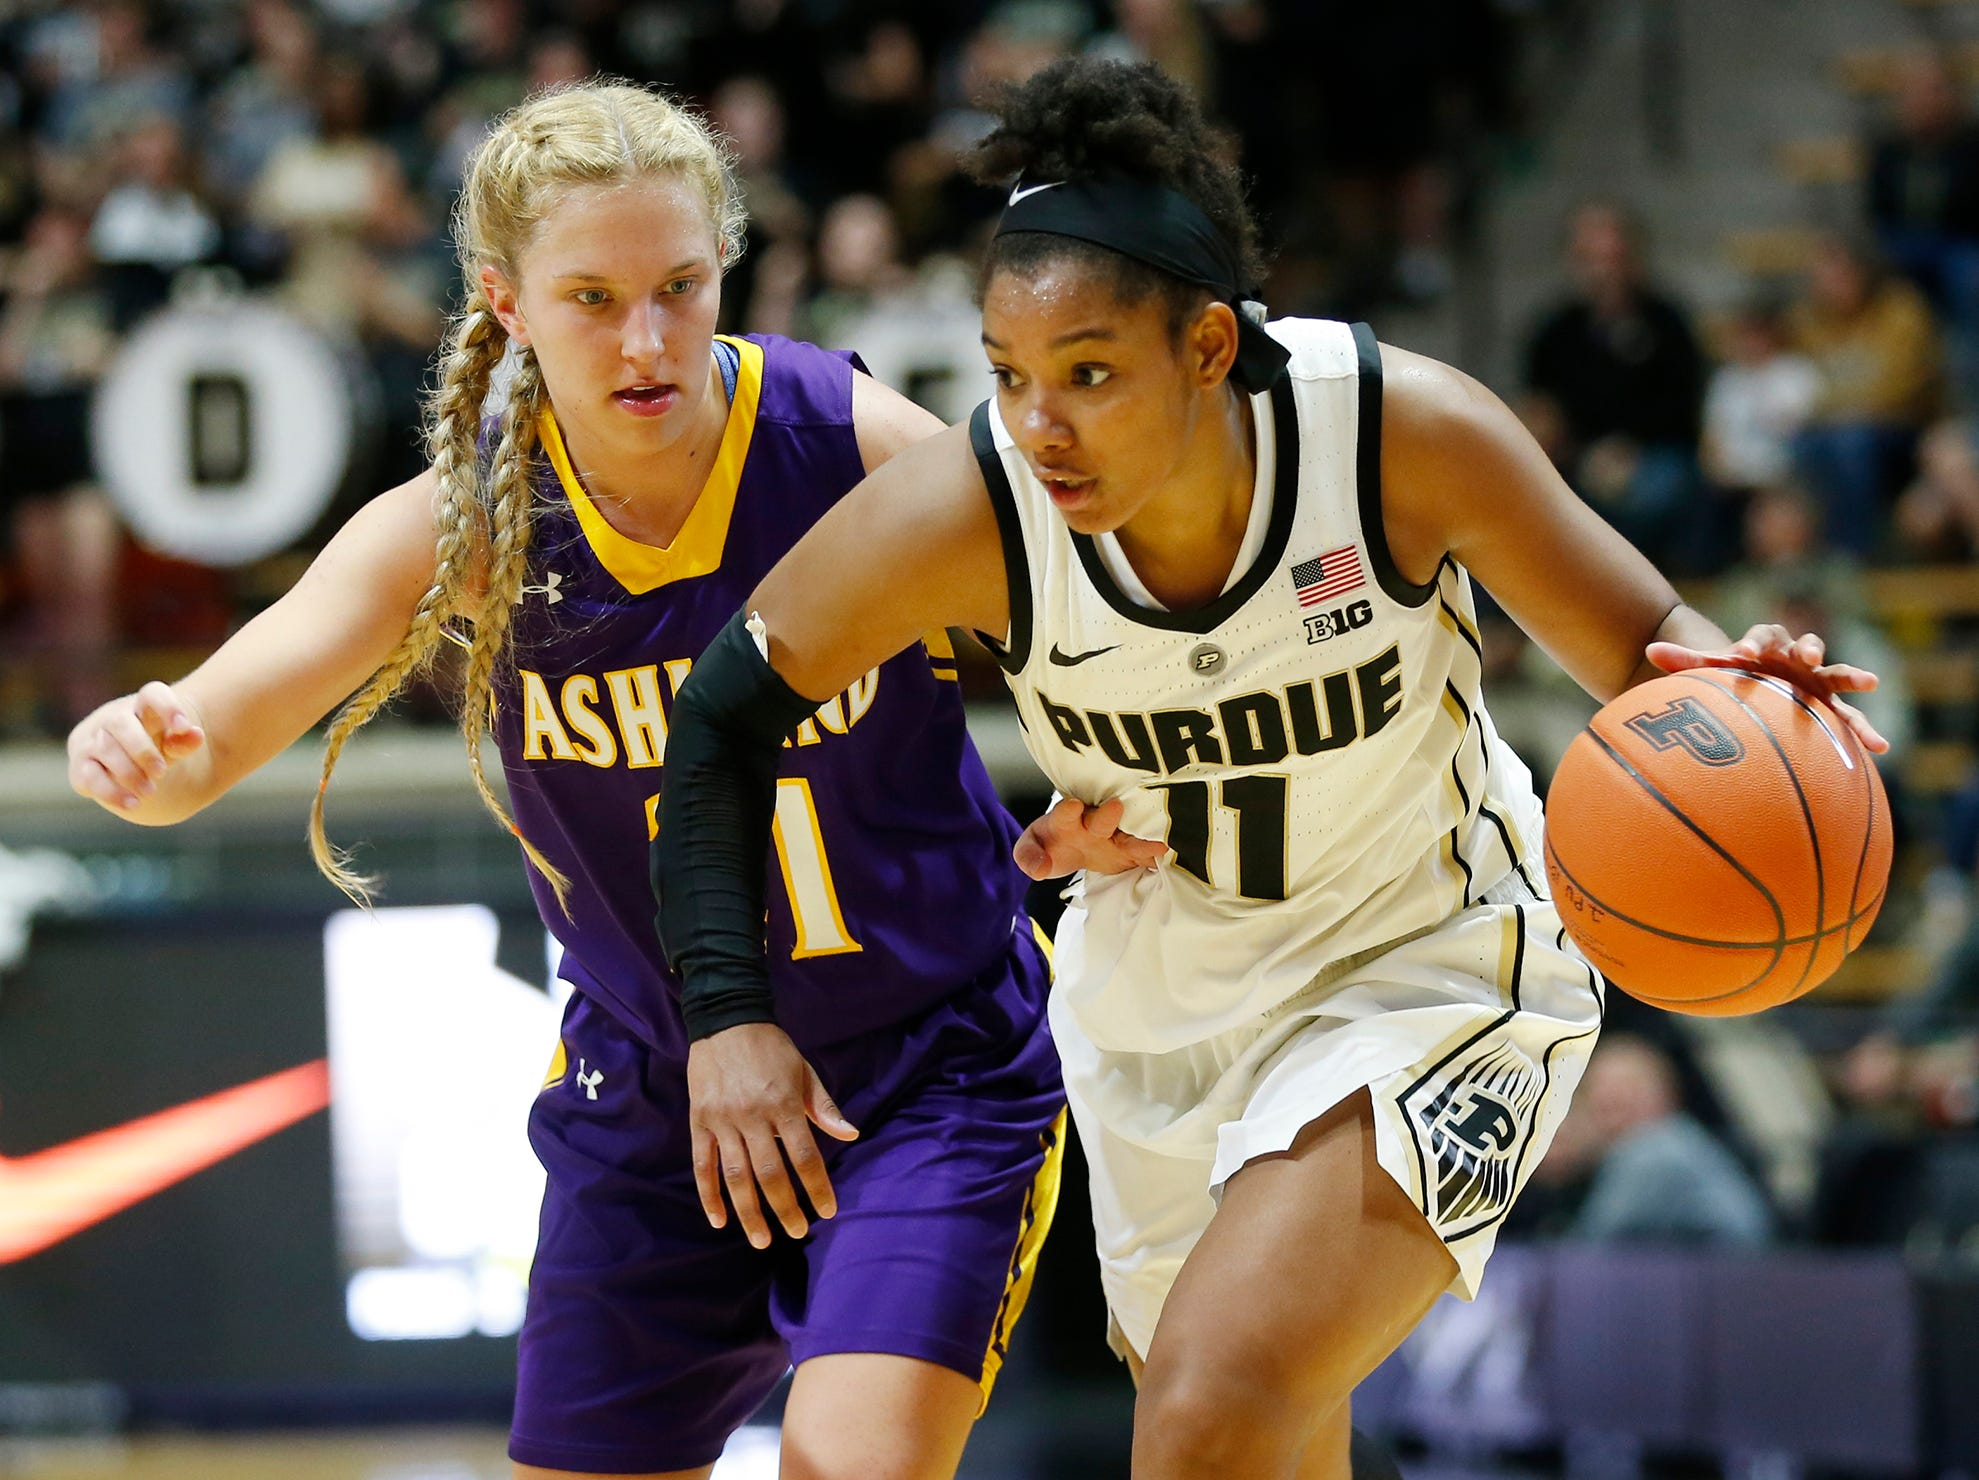 Dominique Oden of Purdue gets a step on Jodi Johnson of Ashland Sunday, November 4, 2018, at Mackey Arena. Purdue defeated Ashland 85-69.